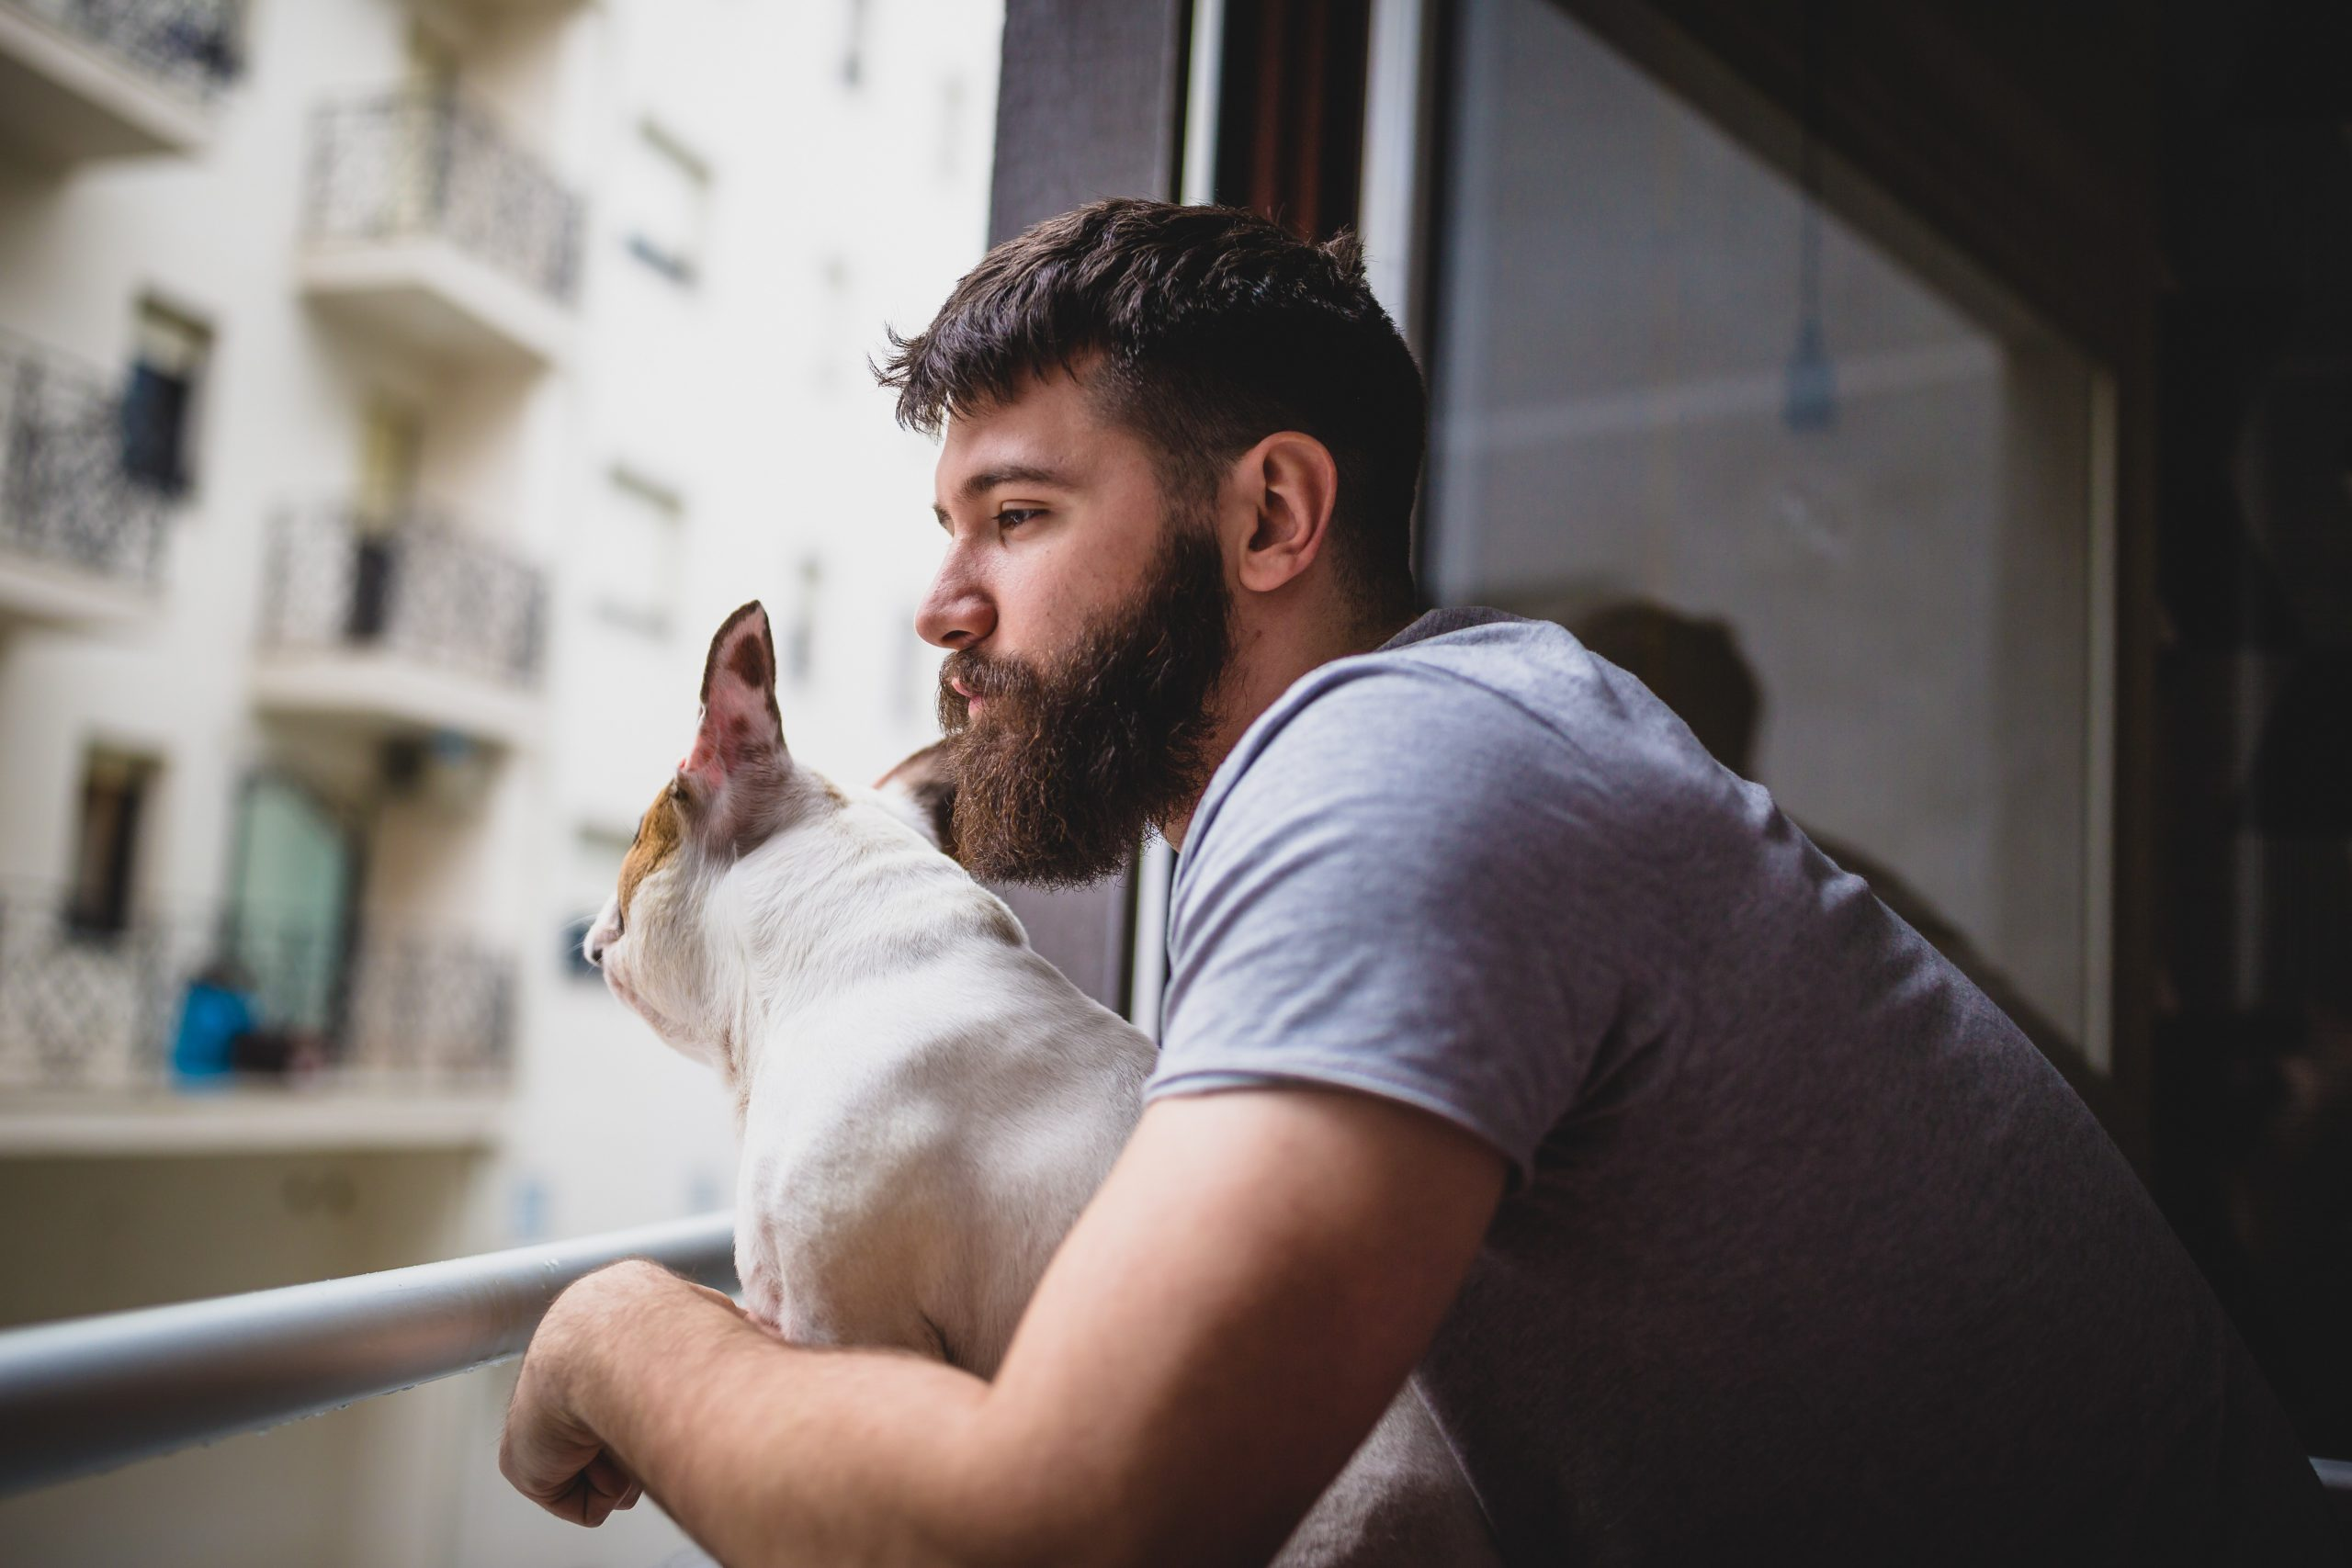 Waking up with his dog, looking through the window